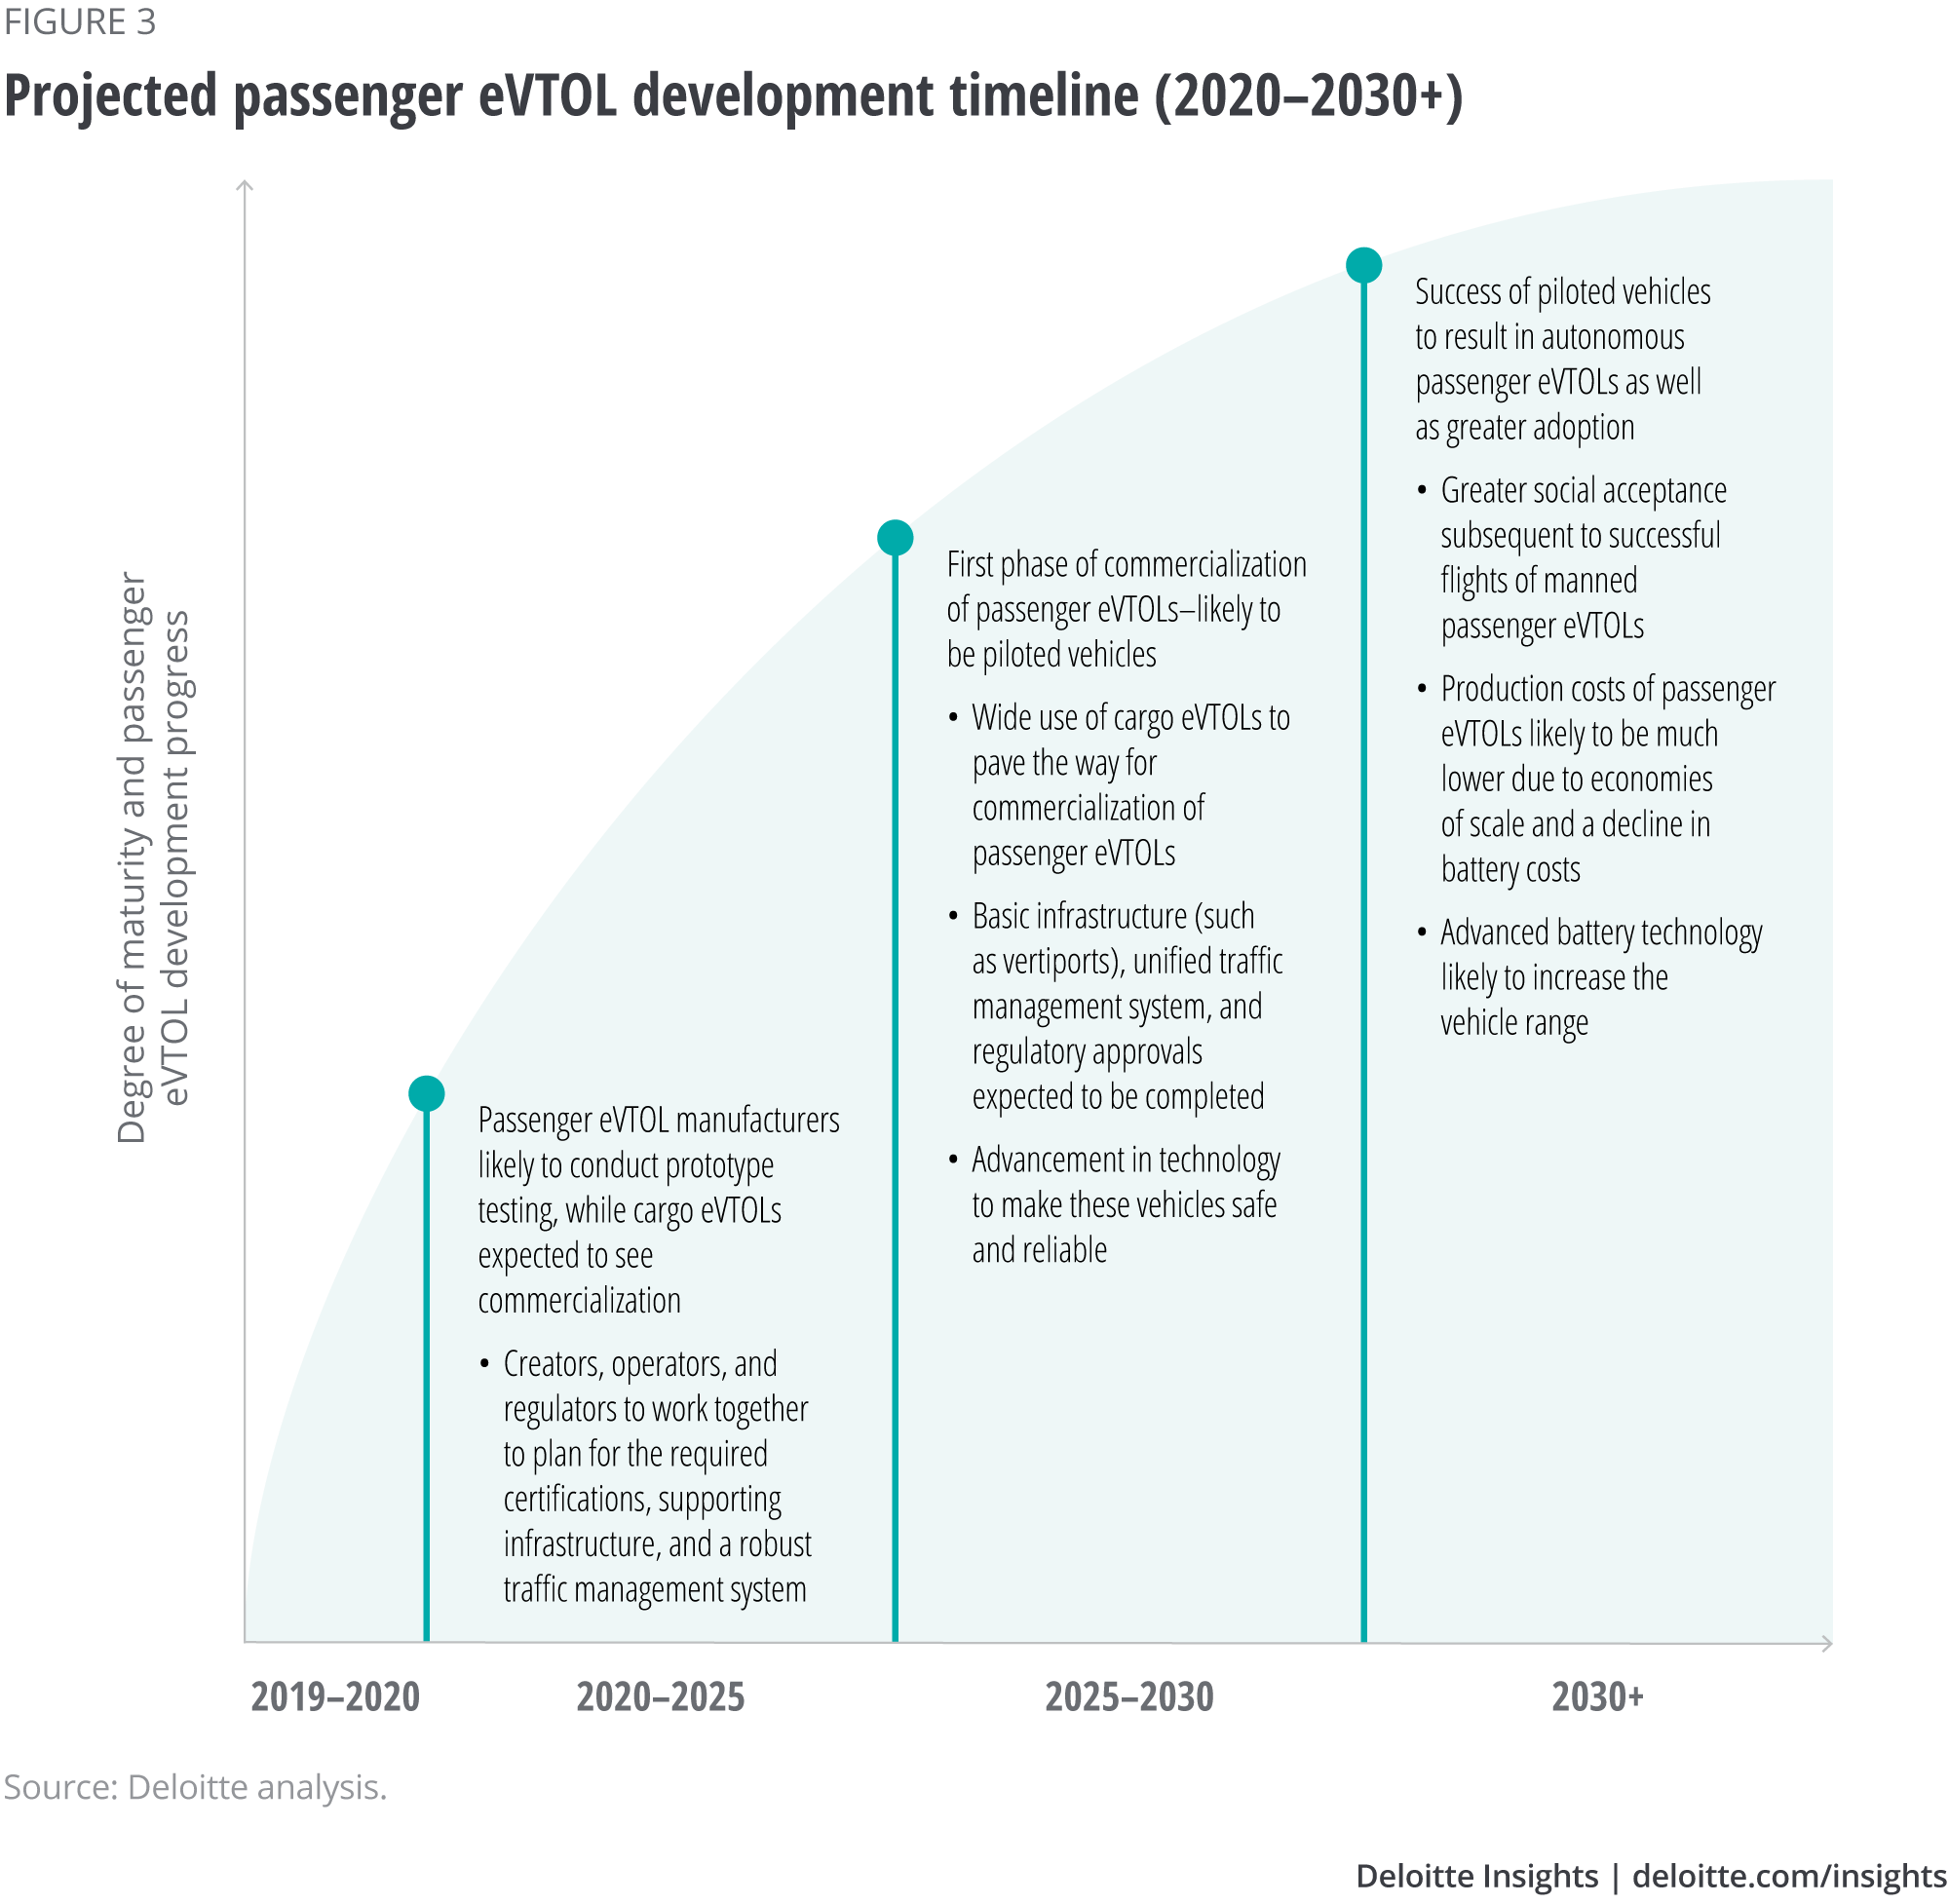 Projected passenger eVTOL development timeline (2020-2030+)